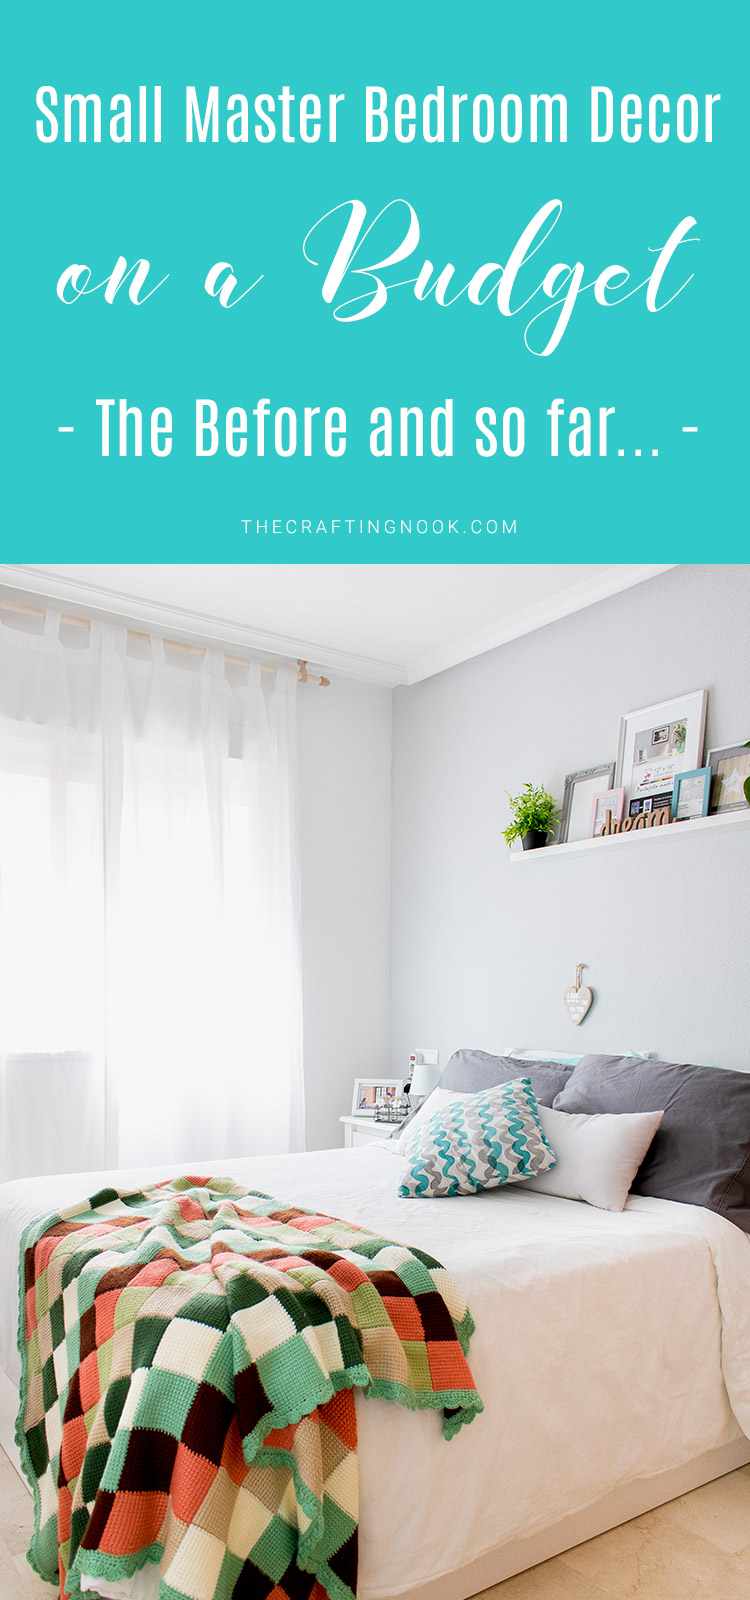 Small Master Bedroom Decor on a Budget (The Before and So far)